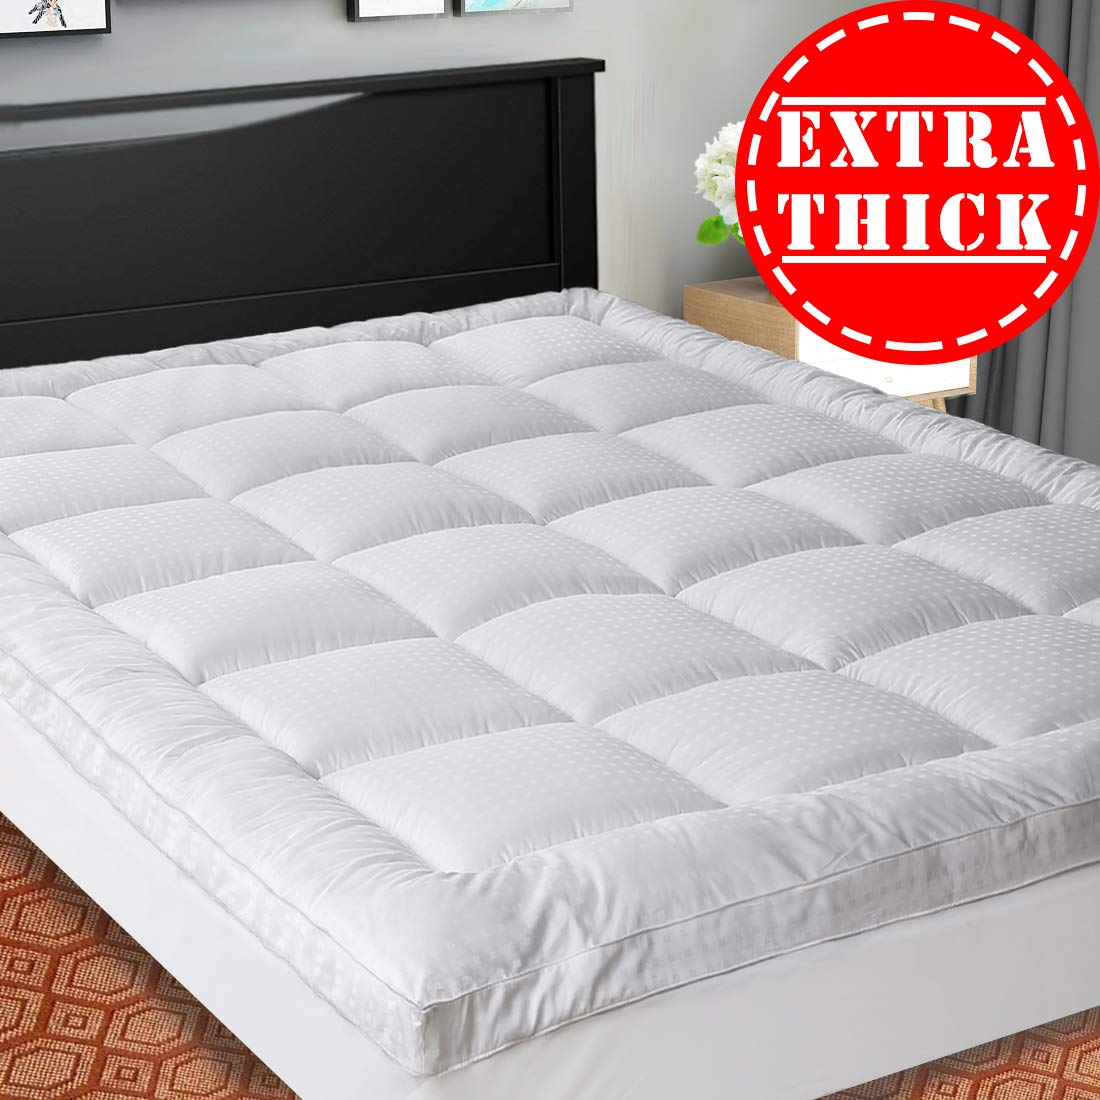 SOPAT Extra Thick Mattress Topper (King),Cooling Mattress Pad Cover,Pillow Top Construction (8-21Inch Deep Pocket),Double Border,Down Alternative Fill,Breathable